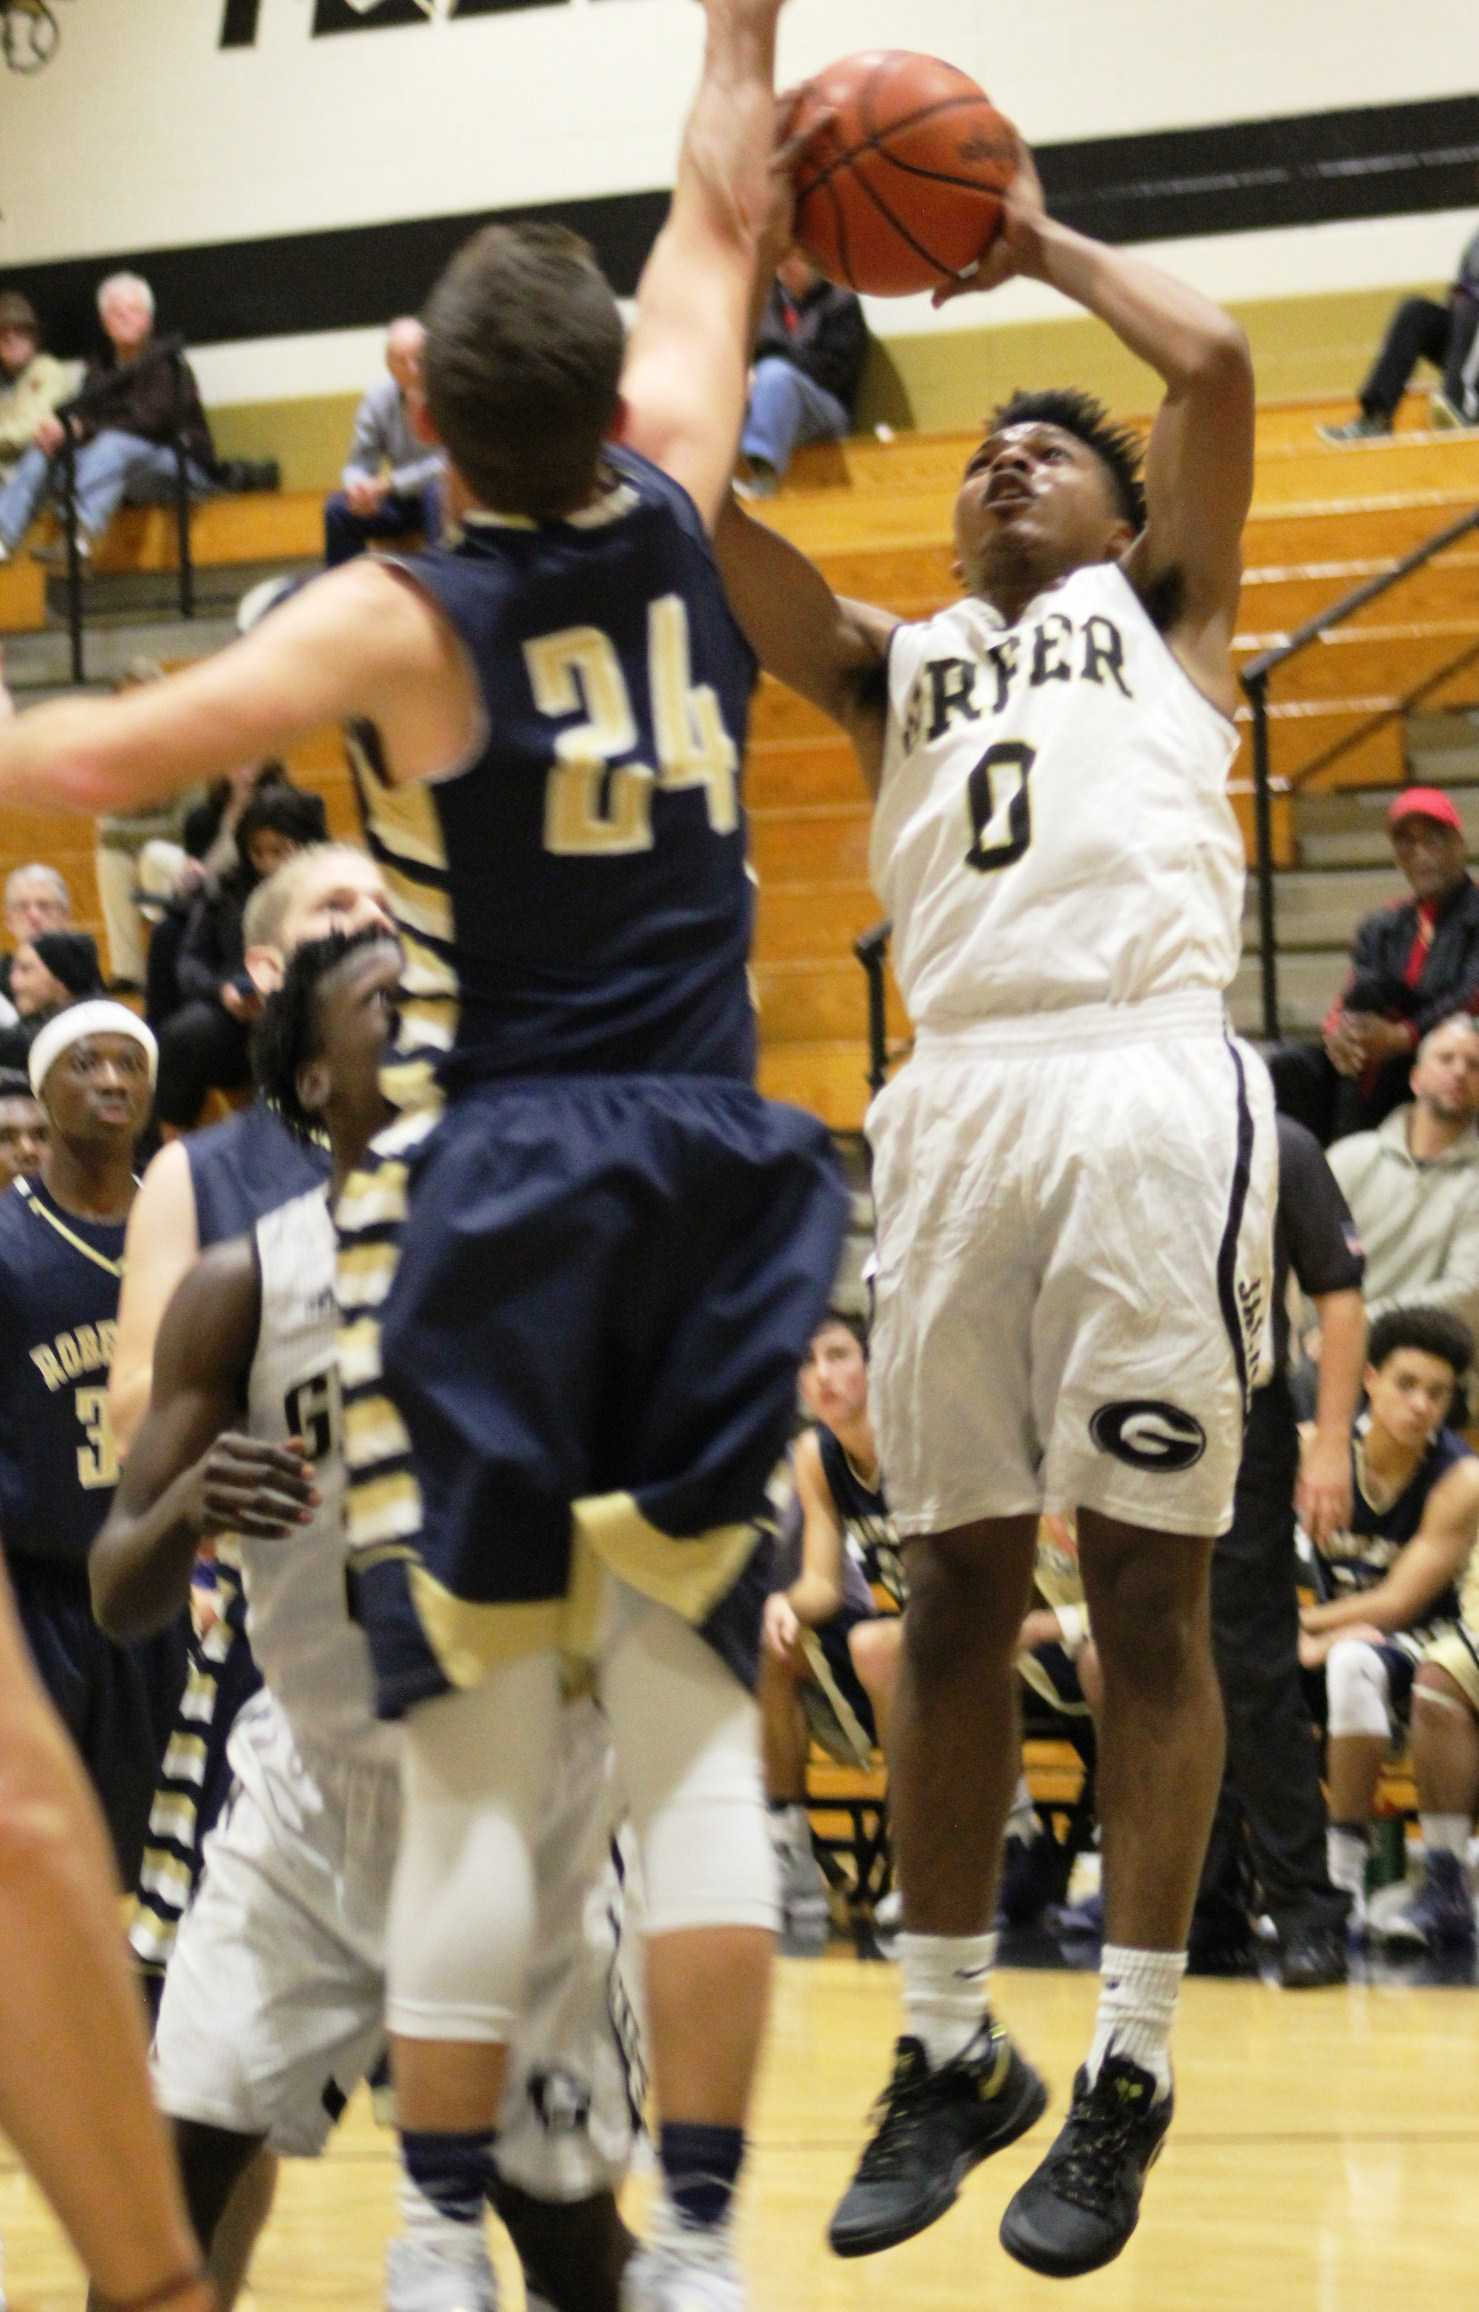 Greer High School sophomore Magic Moody drives to the basket in the Yellow Jackets' 80-56 win over T.C. Roberson High School Thursday night at Greer High School.